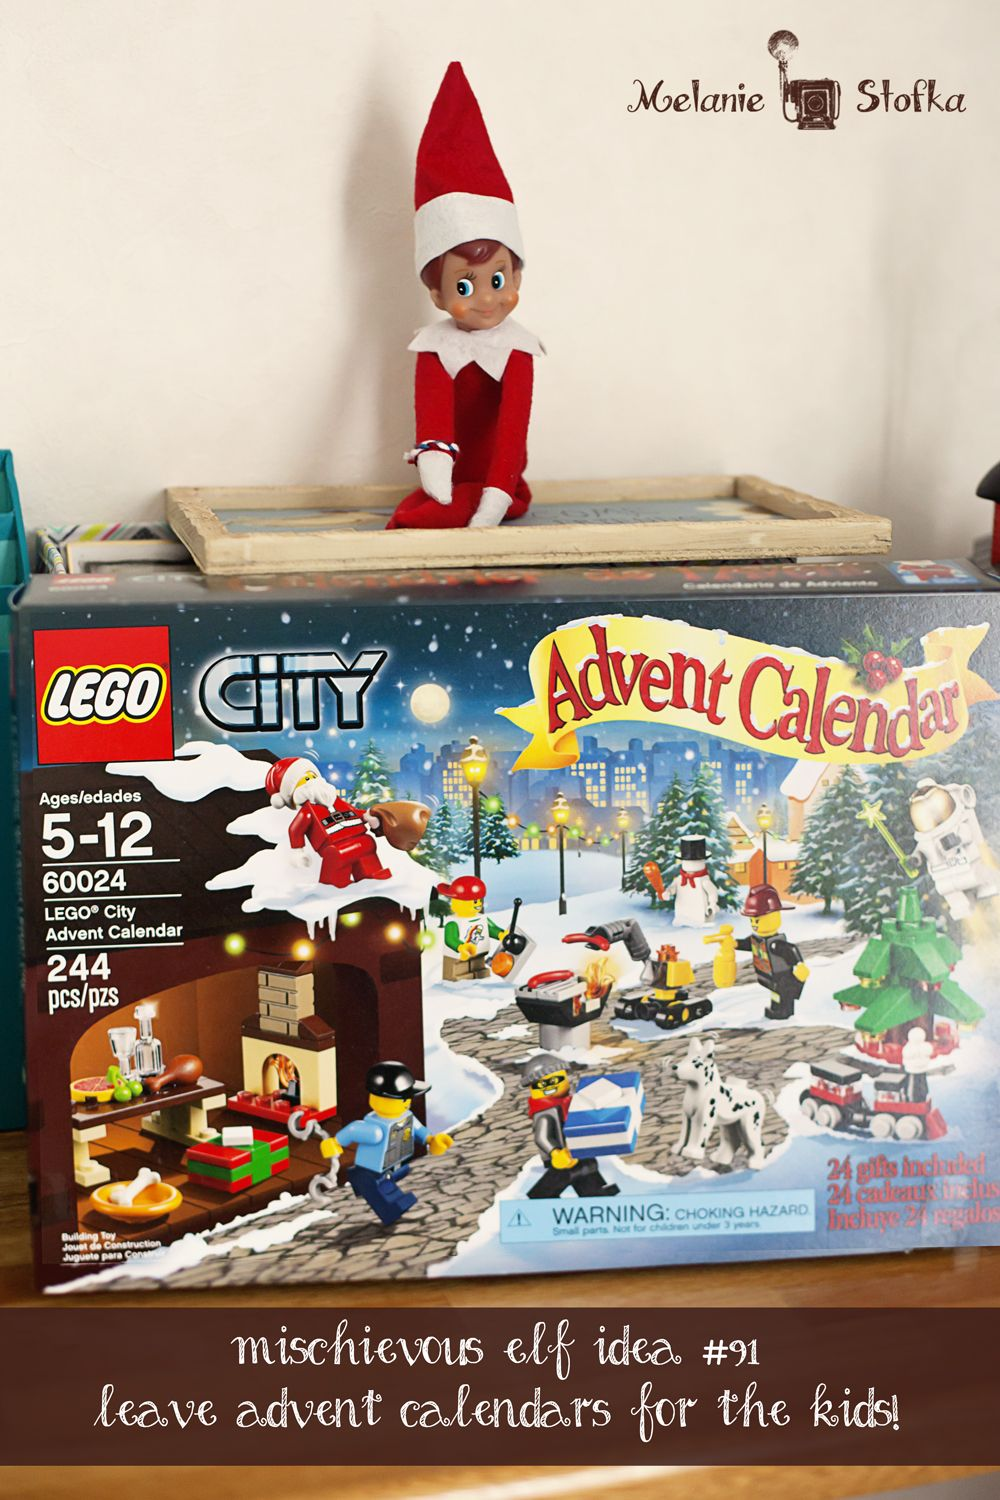 Elf Leaves Advent Calendars For The Kids Plus Links To Almost